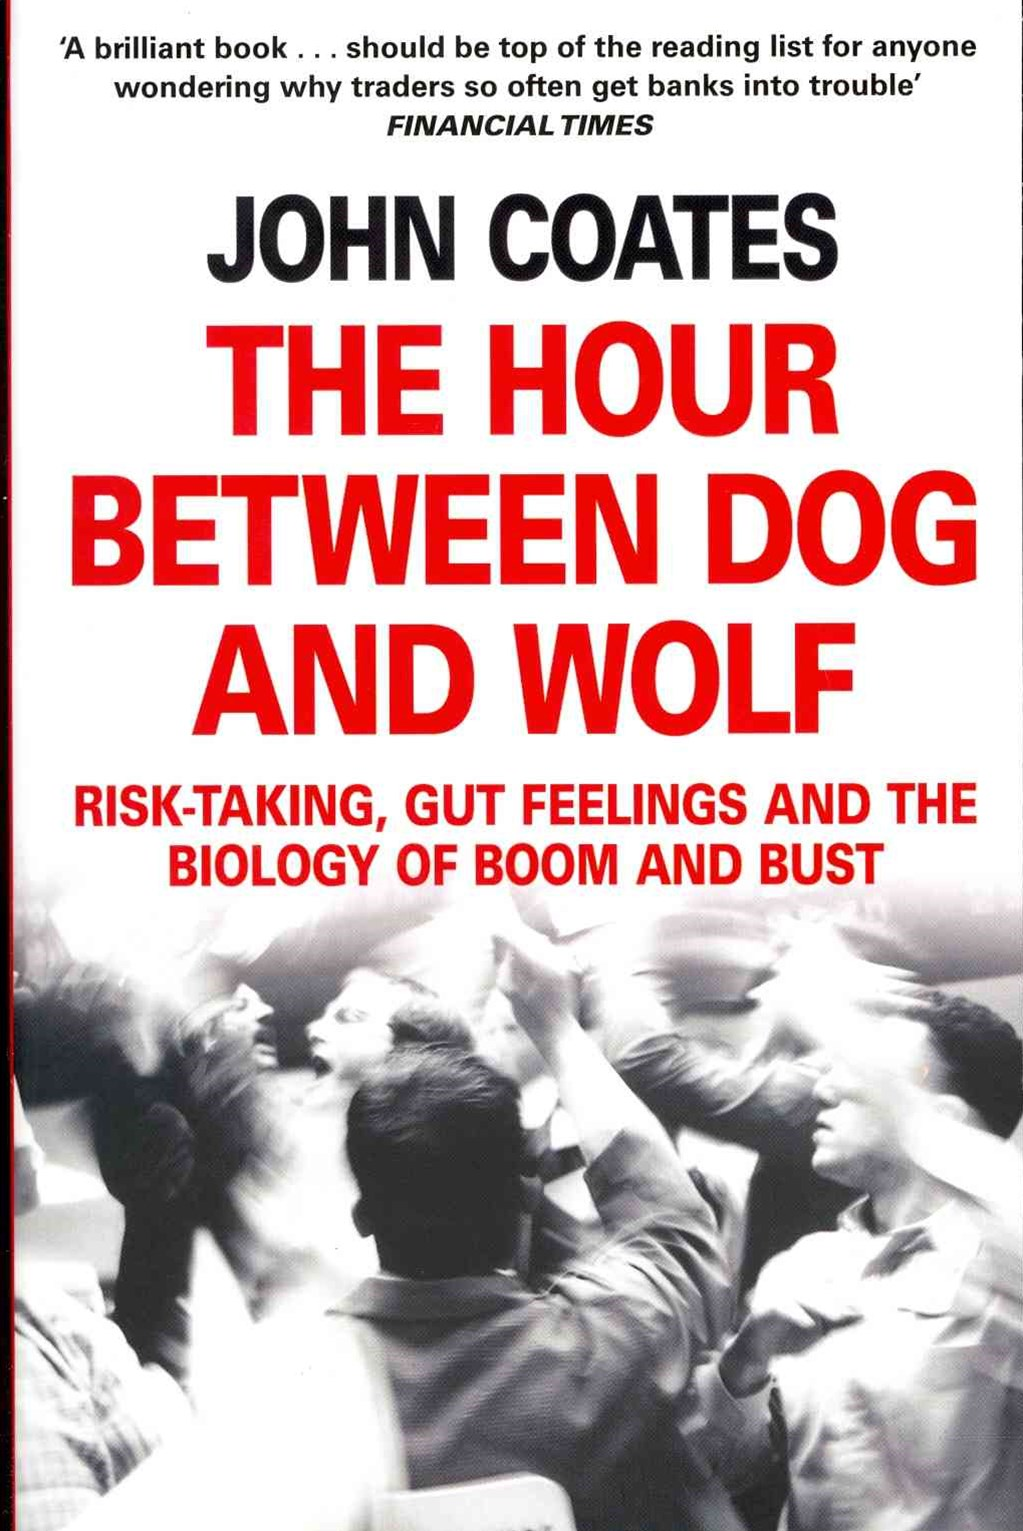 The Hour Between Dog And Wolf: Risk-taking, Gut Feelings and the Biologyof Boom and Bust